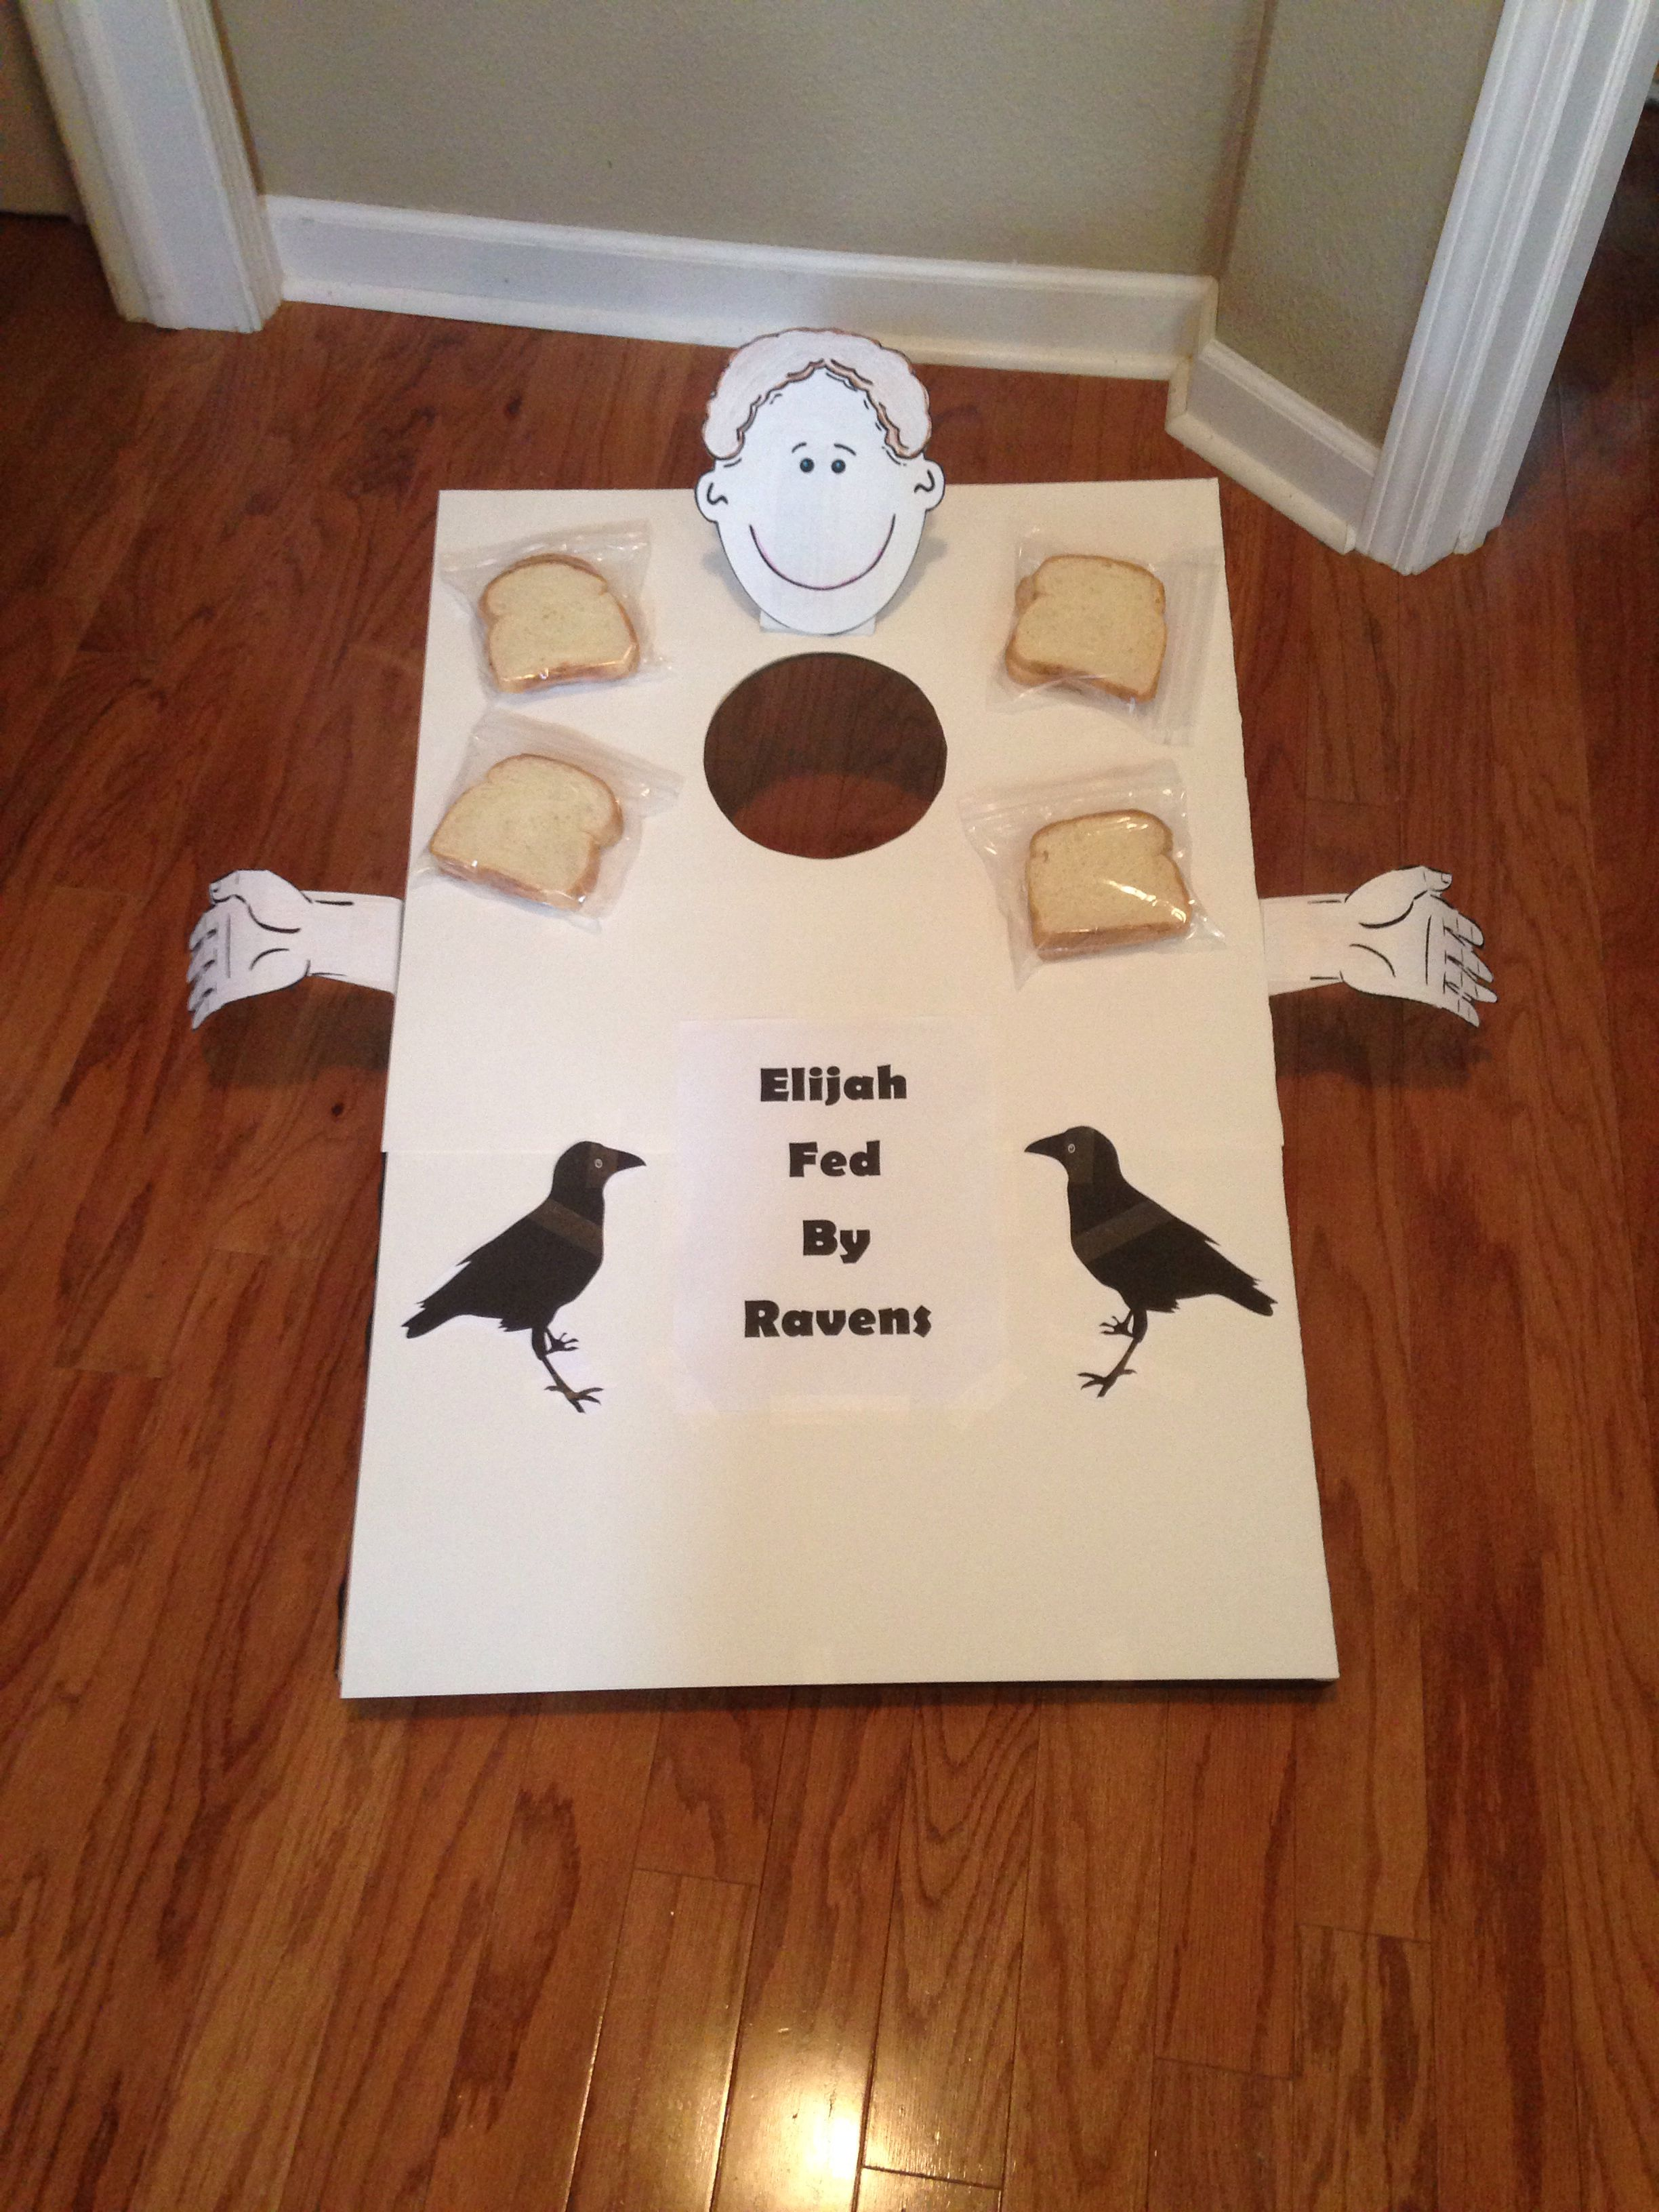 Elijah Fed By Ravens Game Throw The Bread In Hole Great For Preschoolers